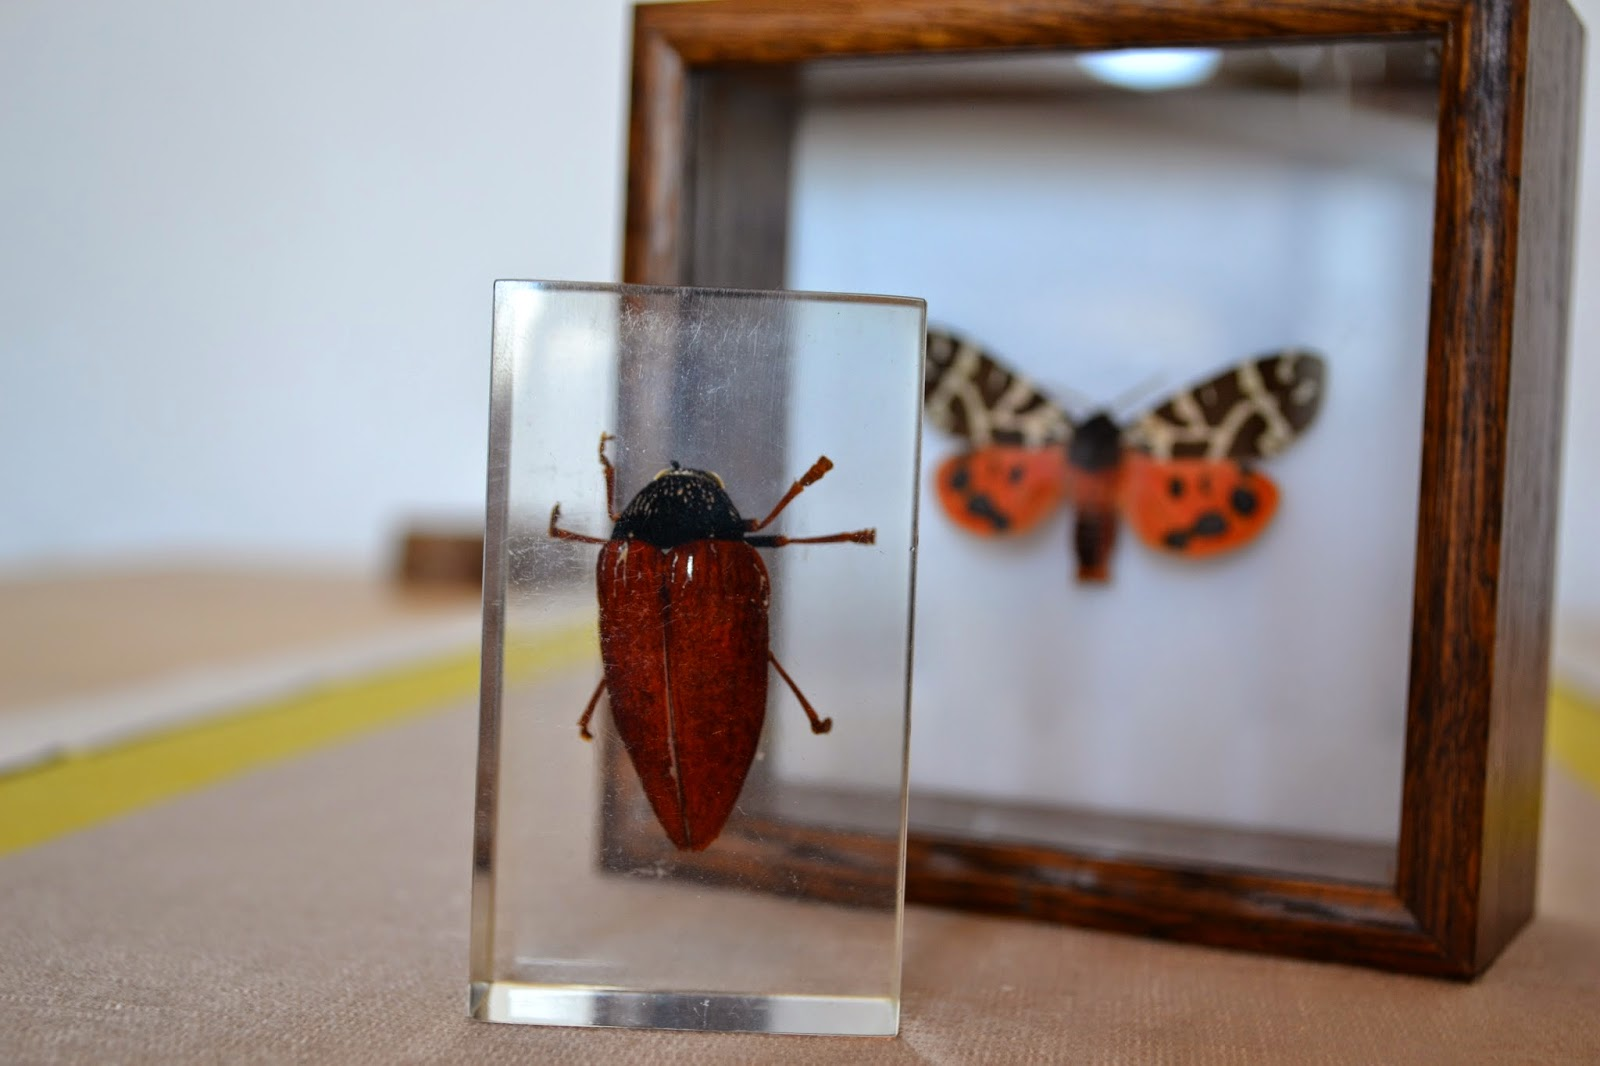 Jewel beetle in acrylic and garden tiger moth